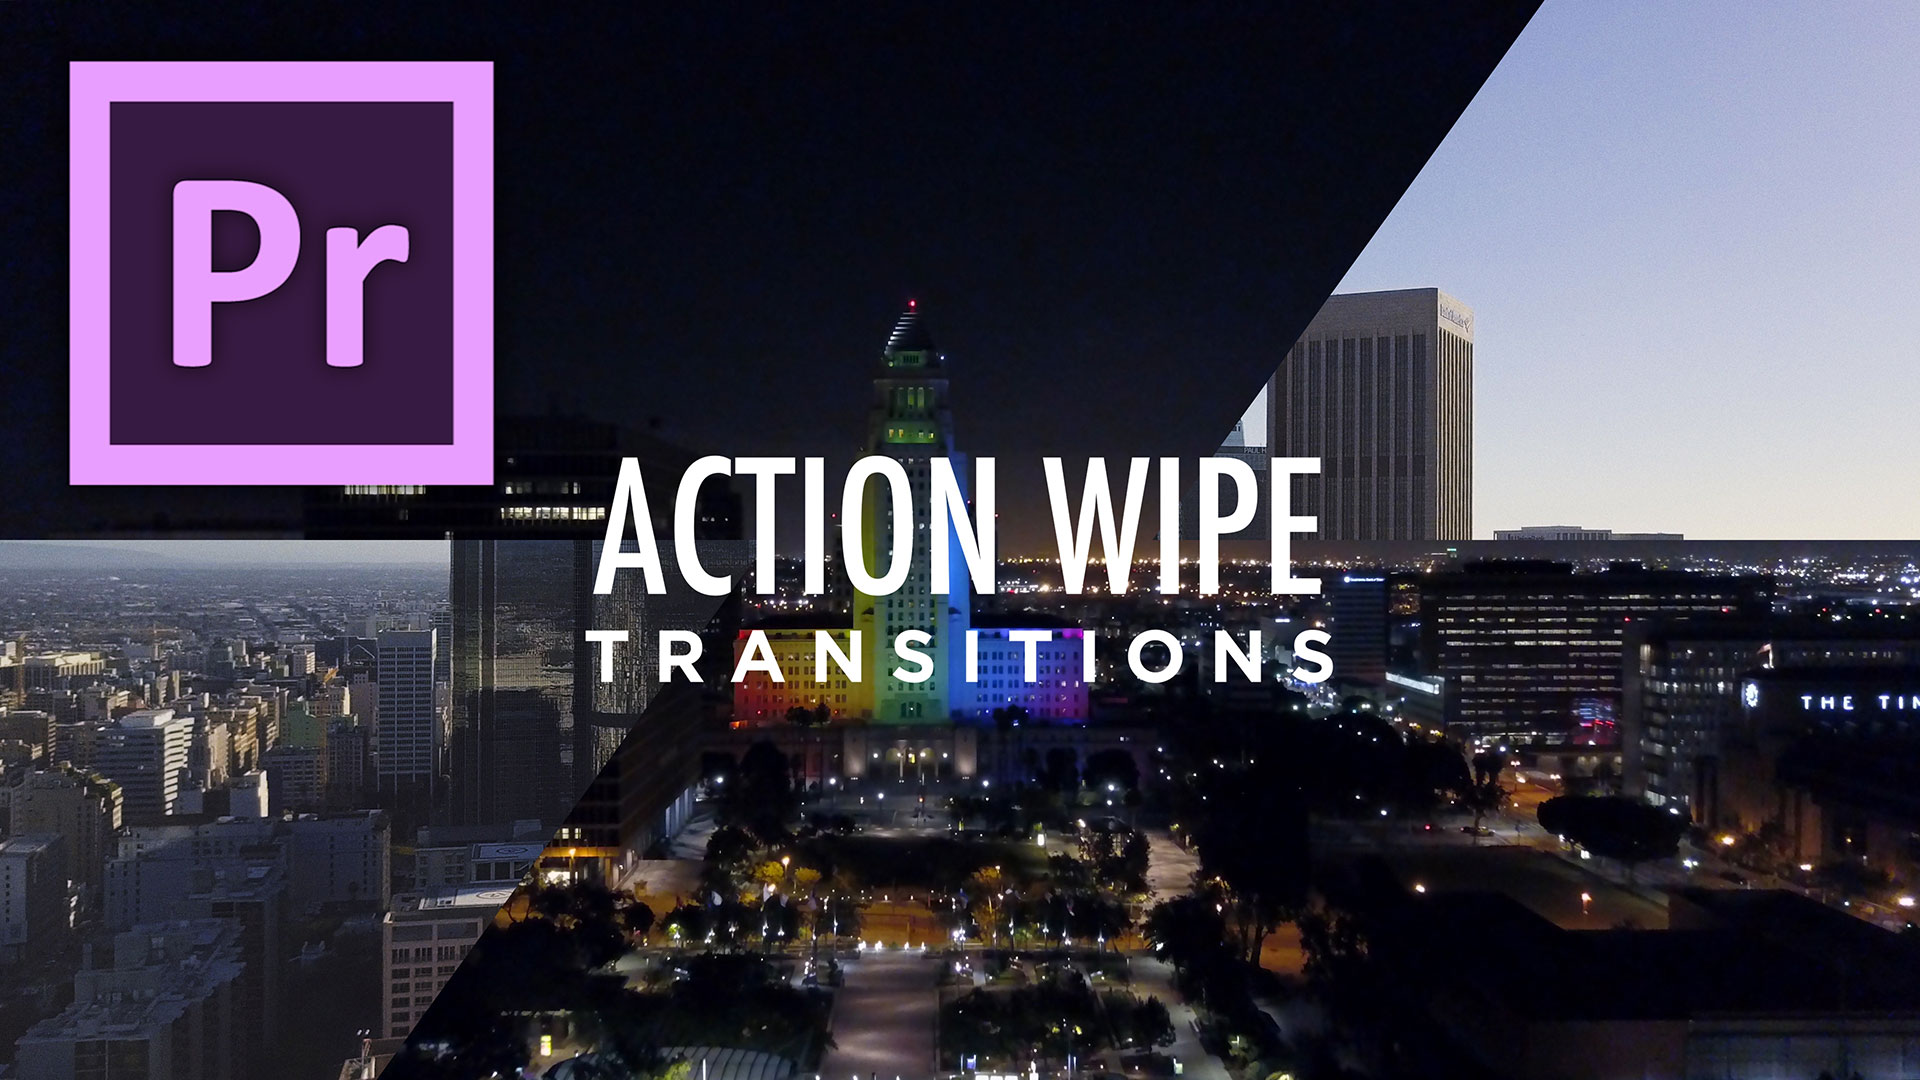 Action Wipe Transitions #adobe #premierepro #videoediting